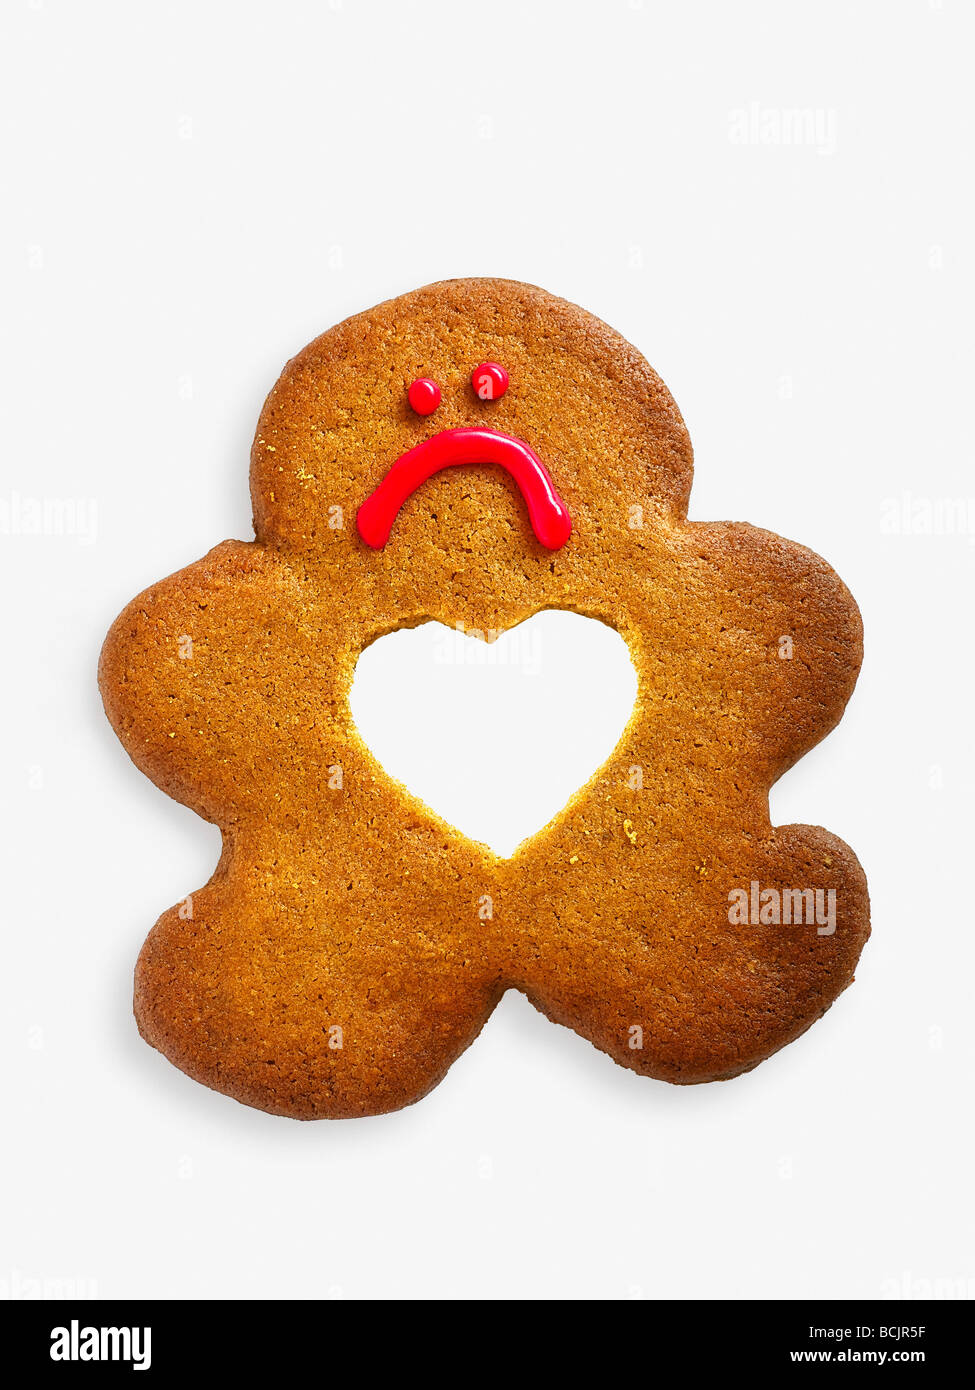 Gingerbread man with missing heart - Stock Image